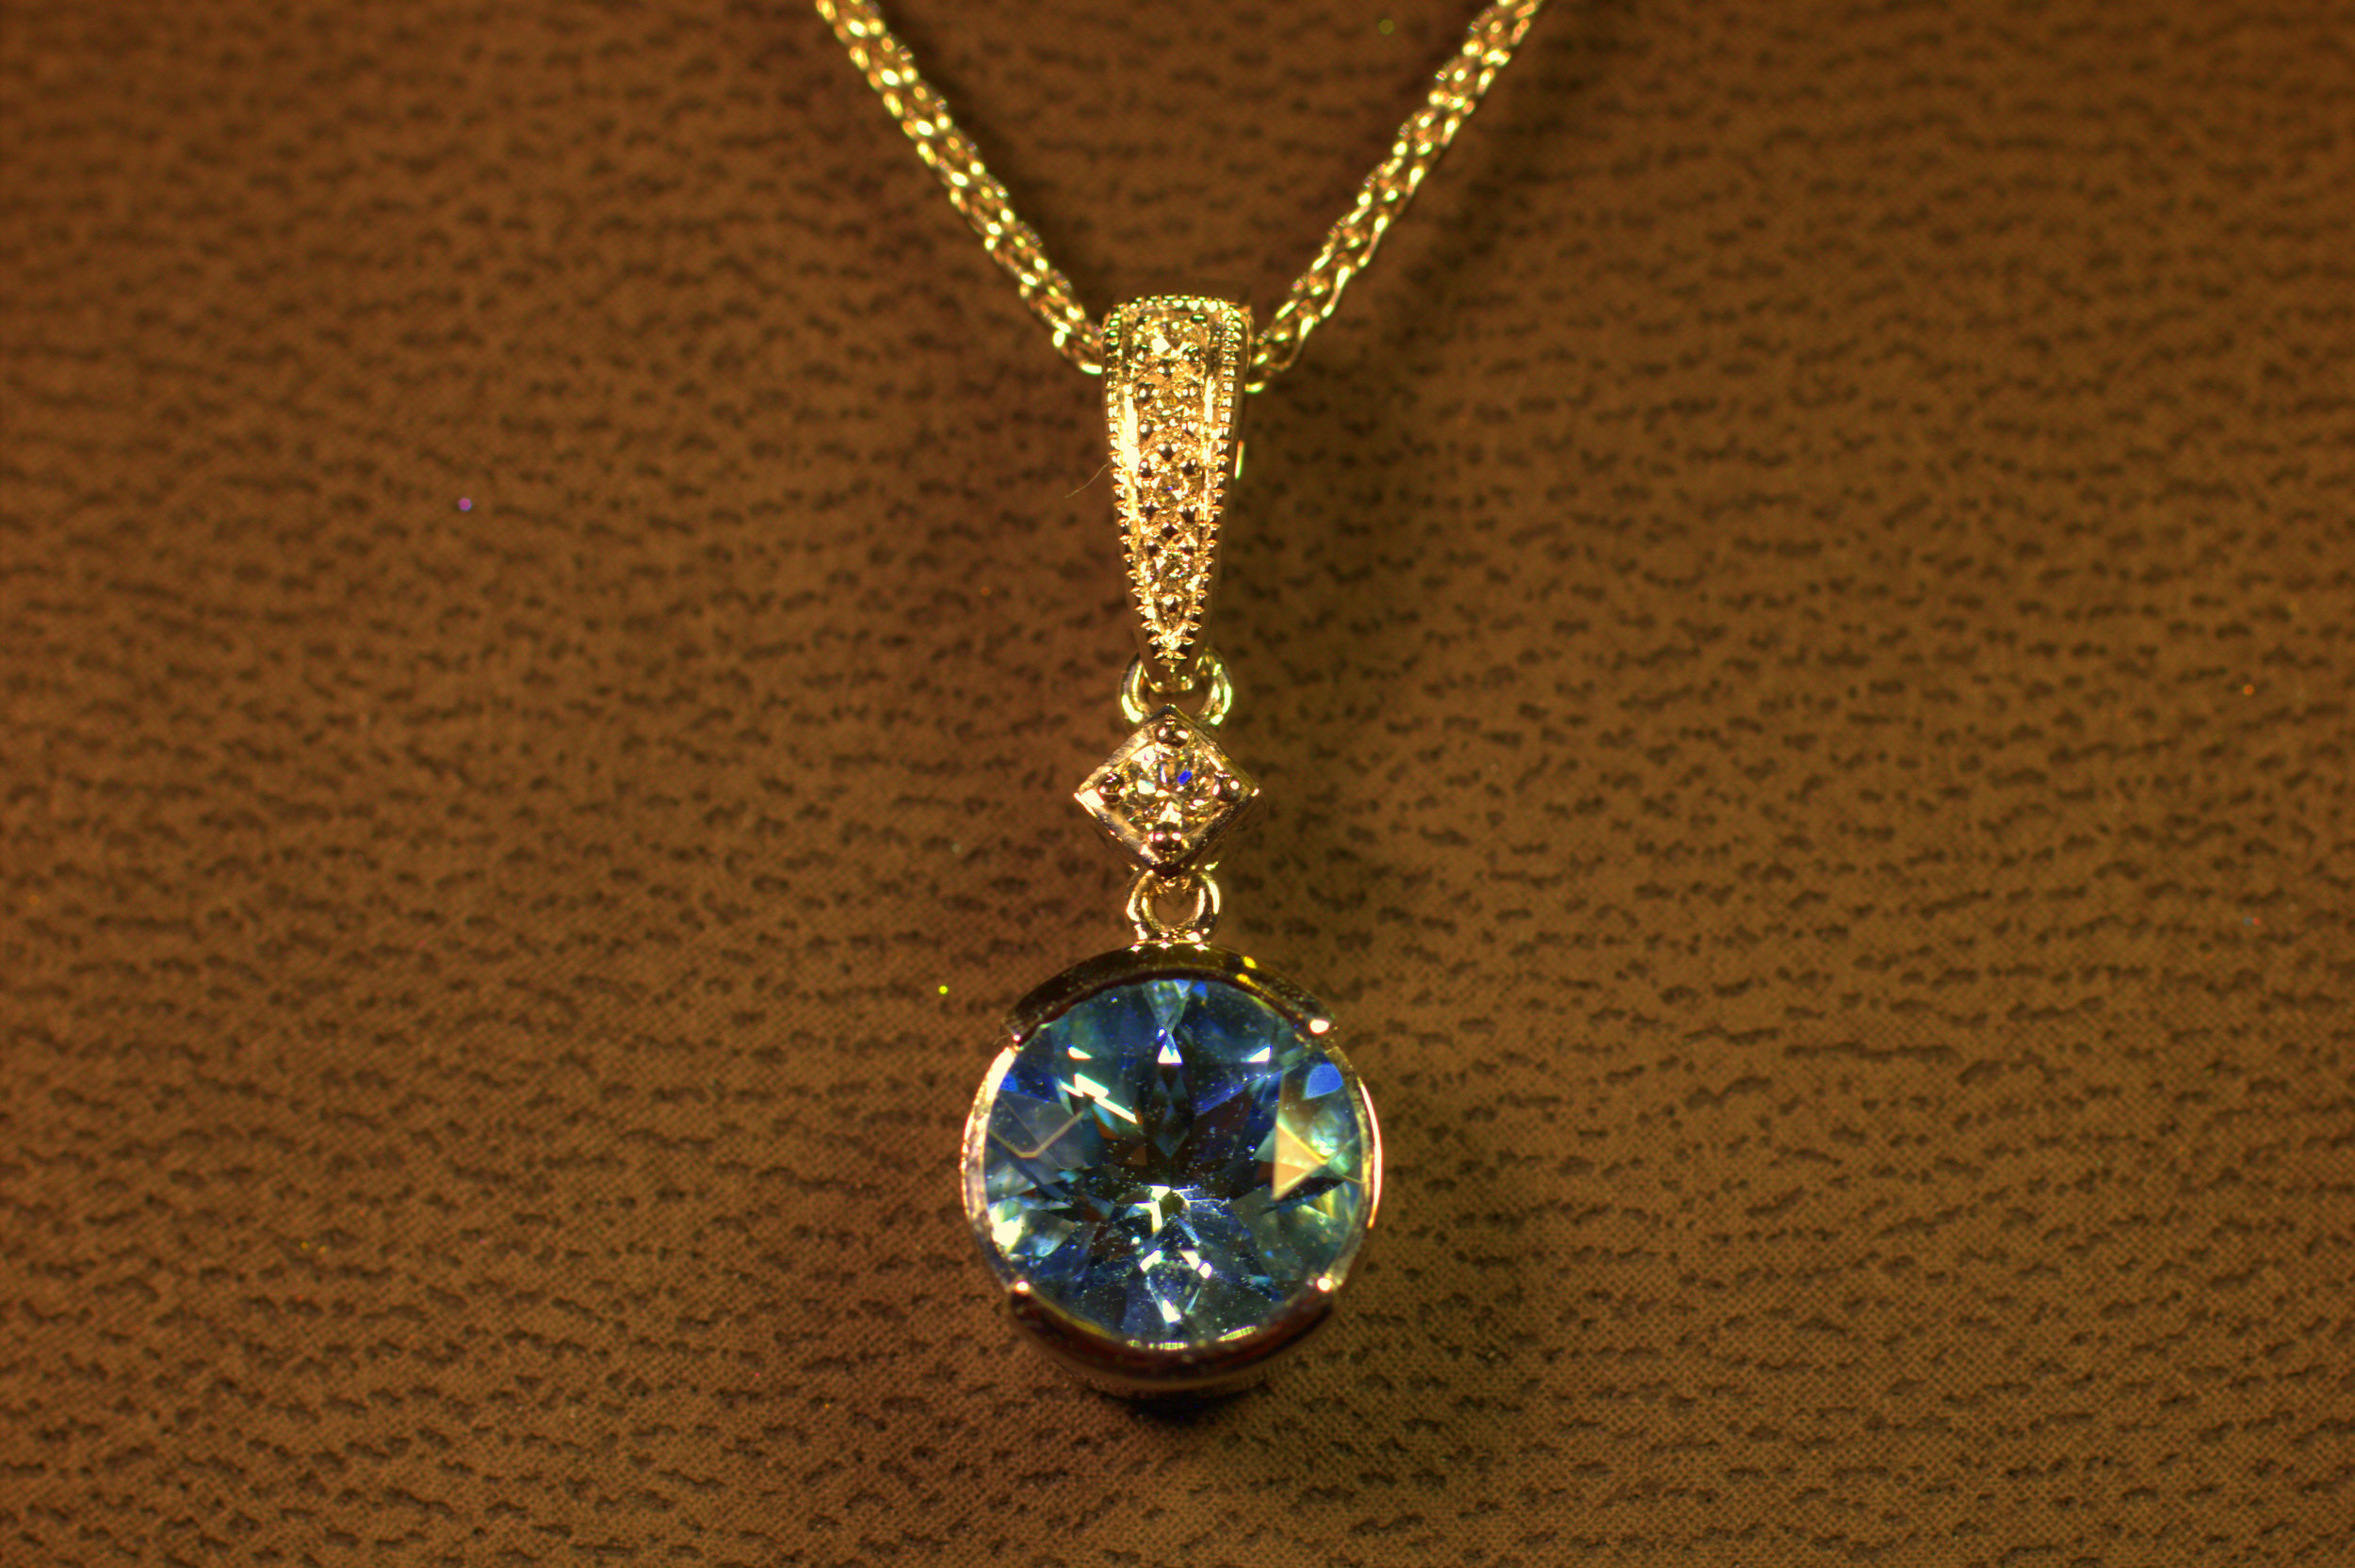 Half bezel pendant with beautiful aquamarine stone. Great fire diamond bail and a single diamond allows for lots of movement and big sparkles. Displayed on white gold chain.  $1150